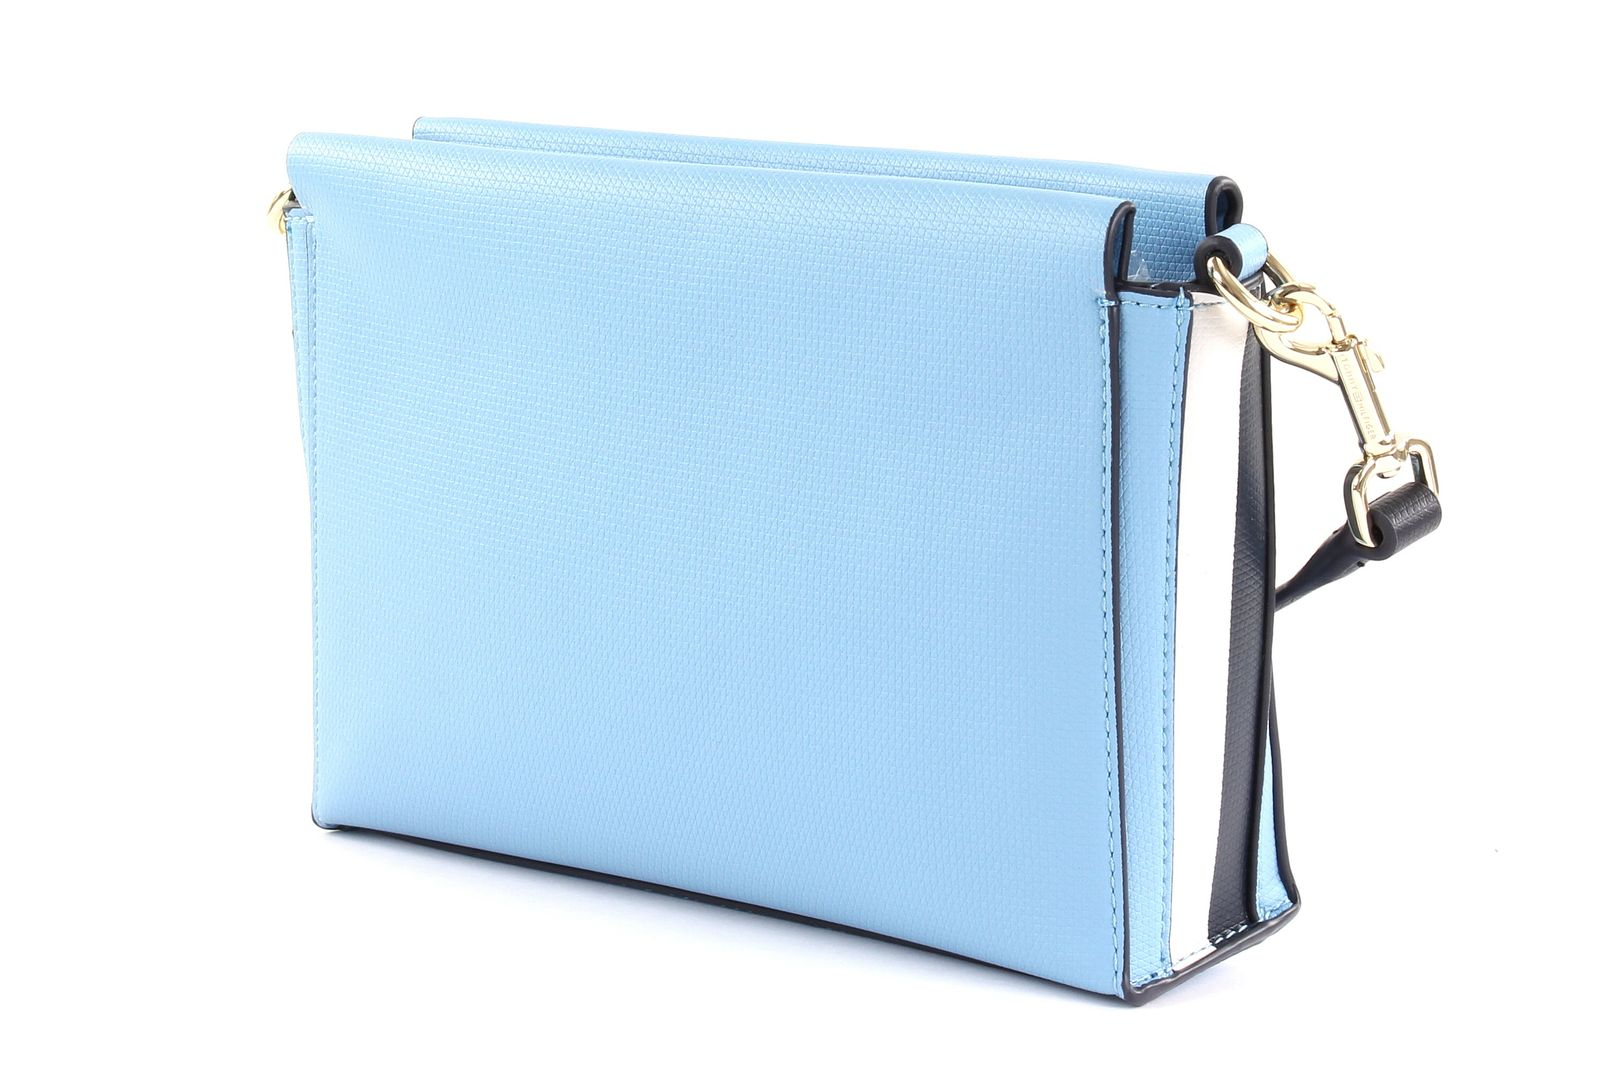 ... To CloseTOMMY HILFIGER Effortless Saffiano Crossover Dusk Blue   92,74  € Tap To CloseOnly possible if you pay by Paypal, Amazon Payments, Credit  Card, ... d2cd20a607a9